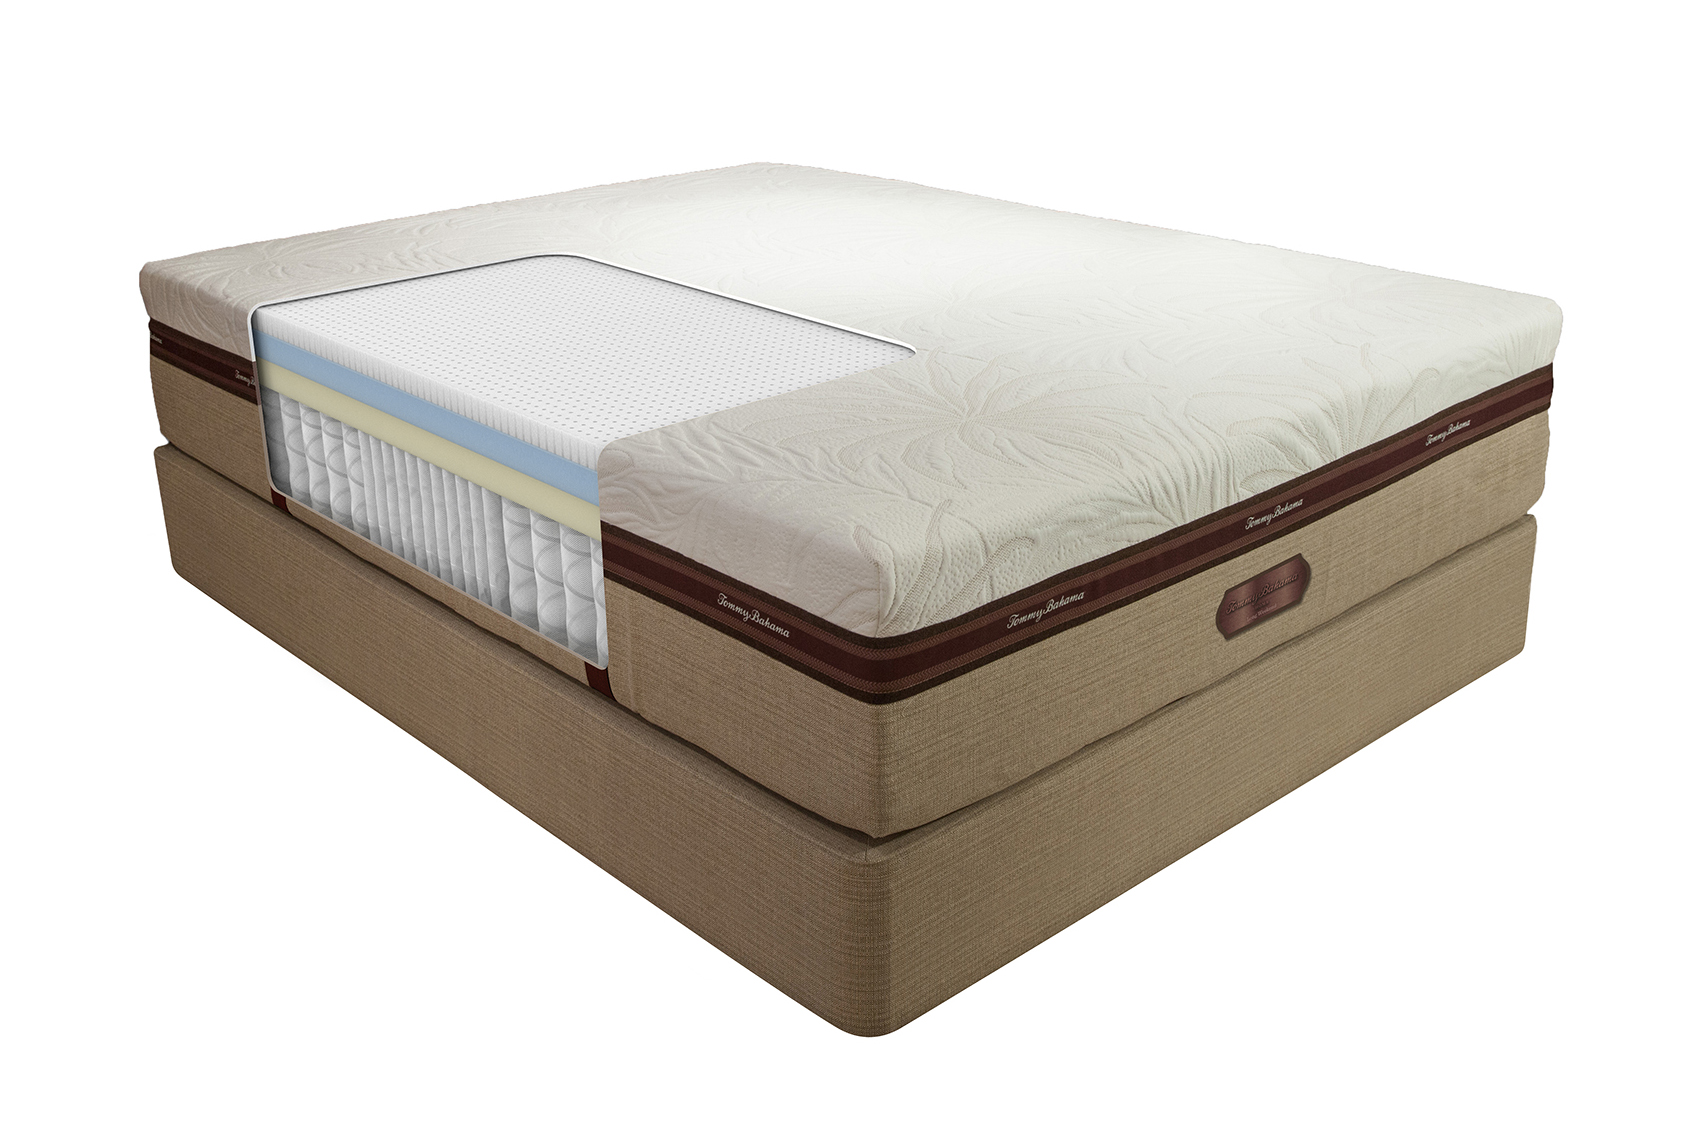 Tommy Bahama cutaway shot of the interior mattress materials for the long weekend model